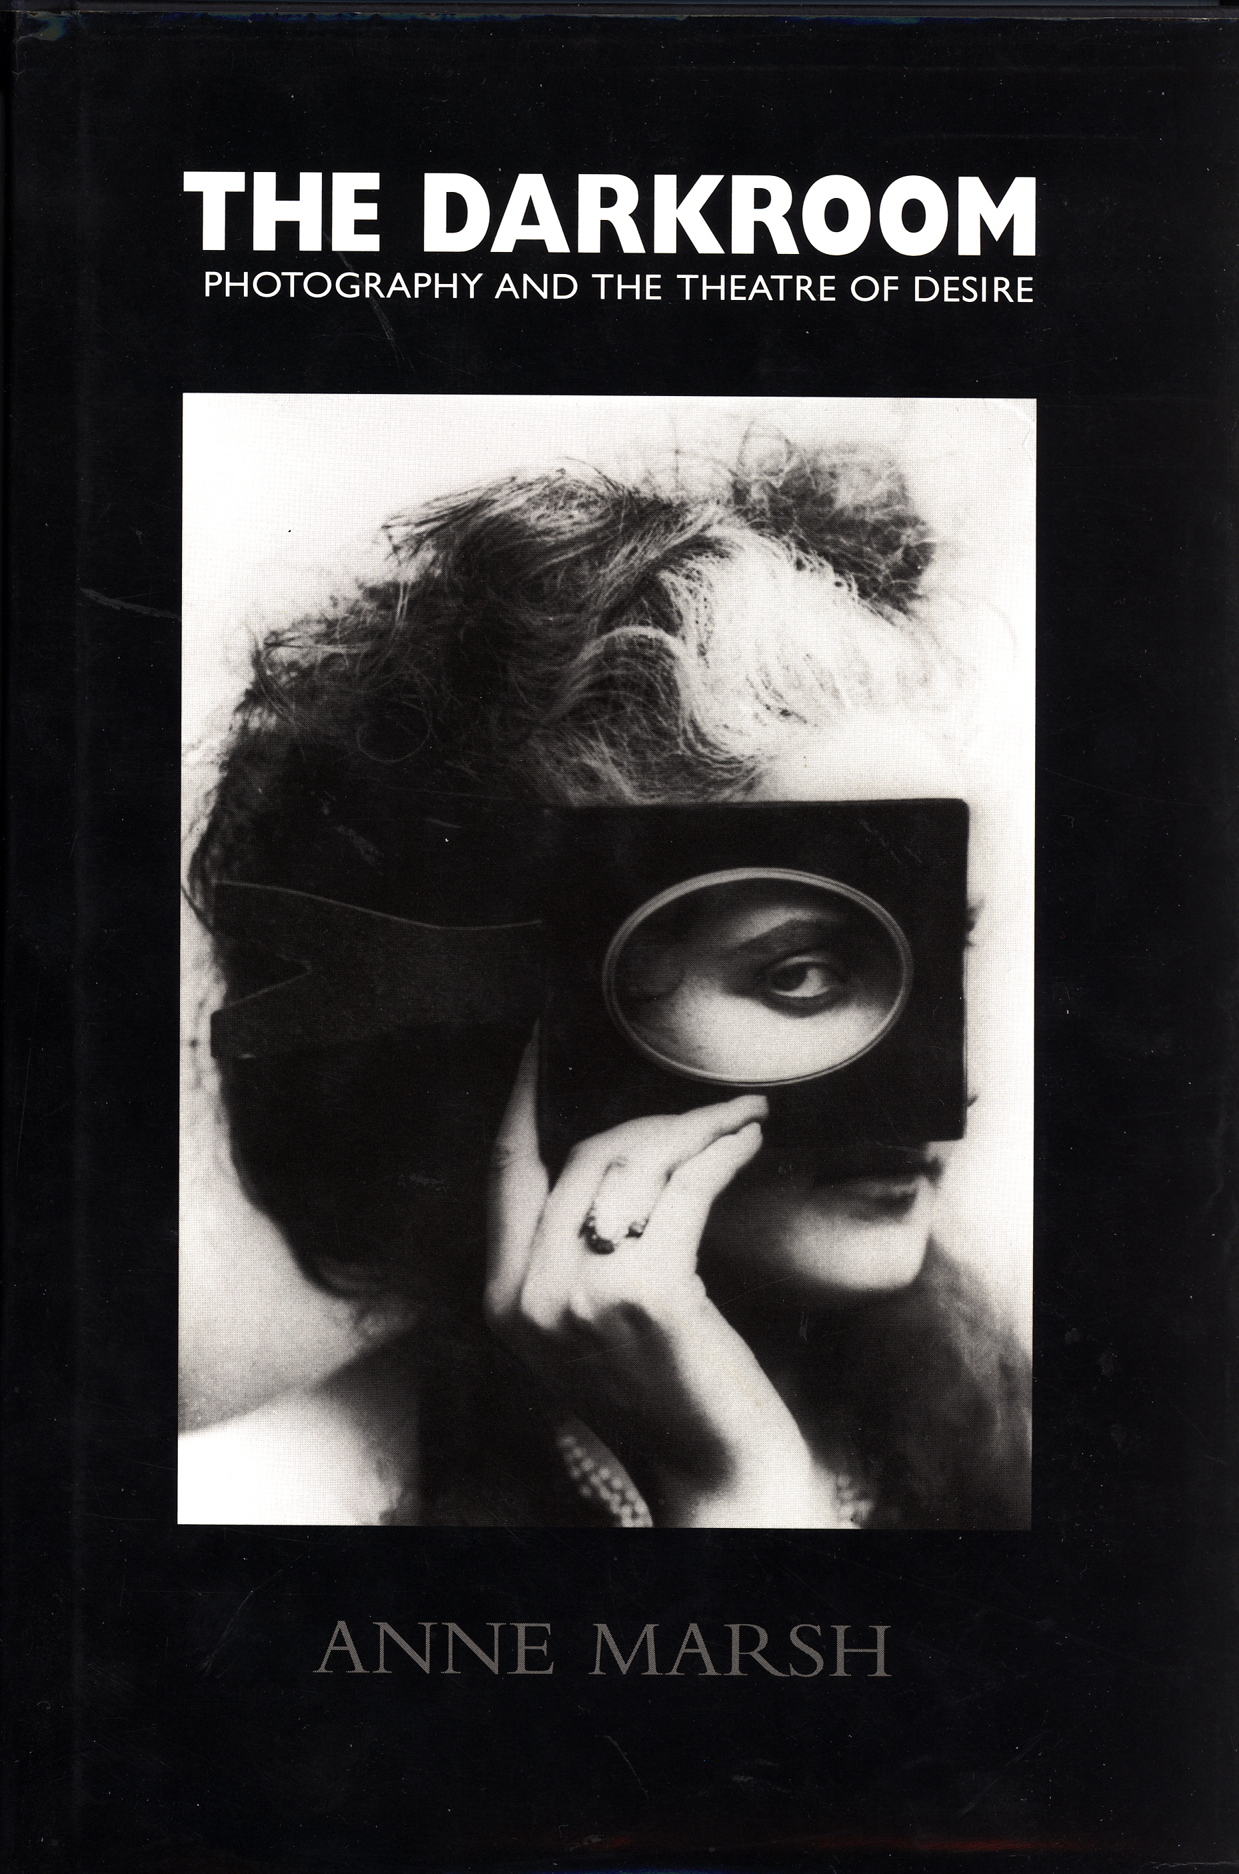 The Darkroom: Photography and the Theatre of Desire.